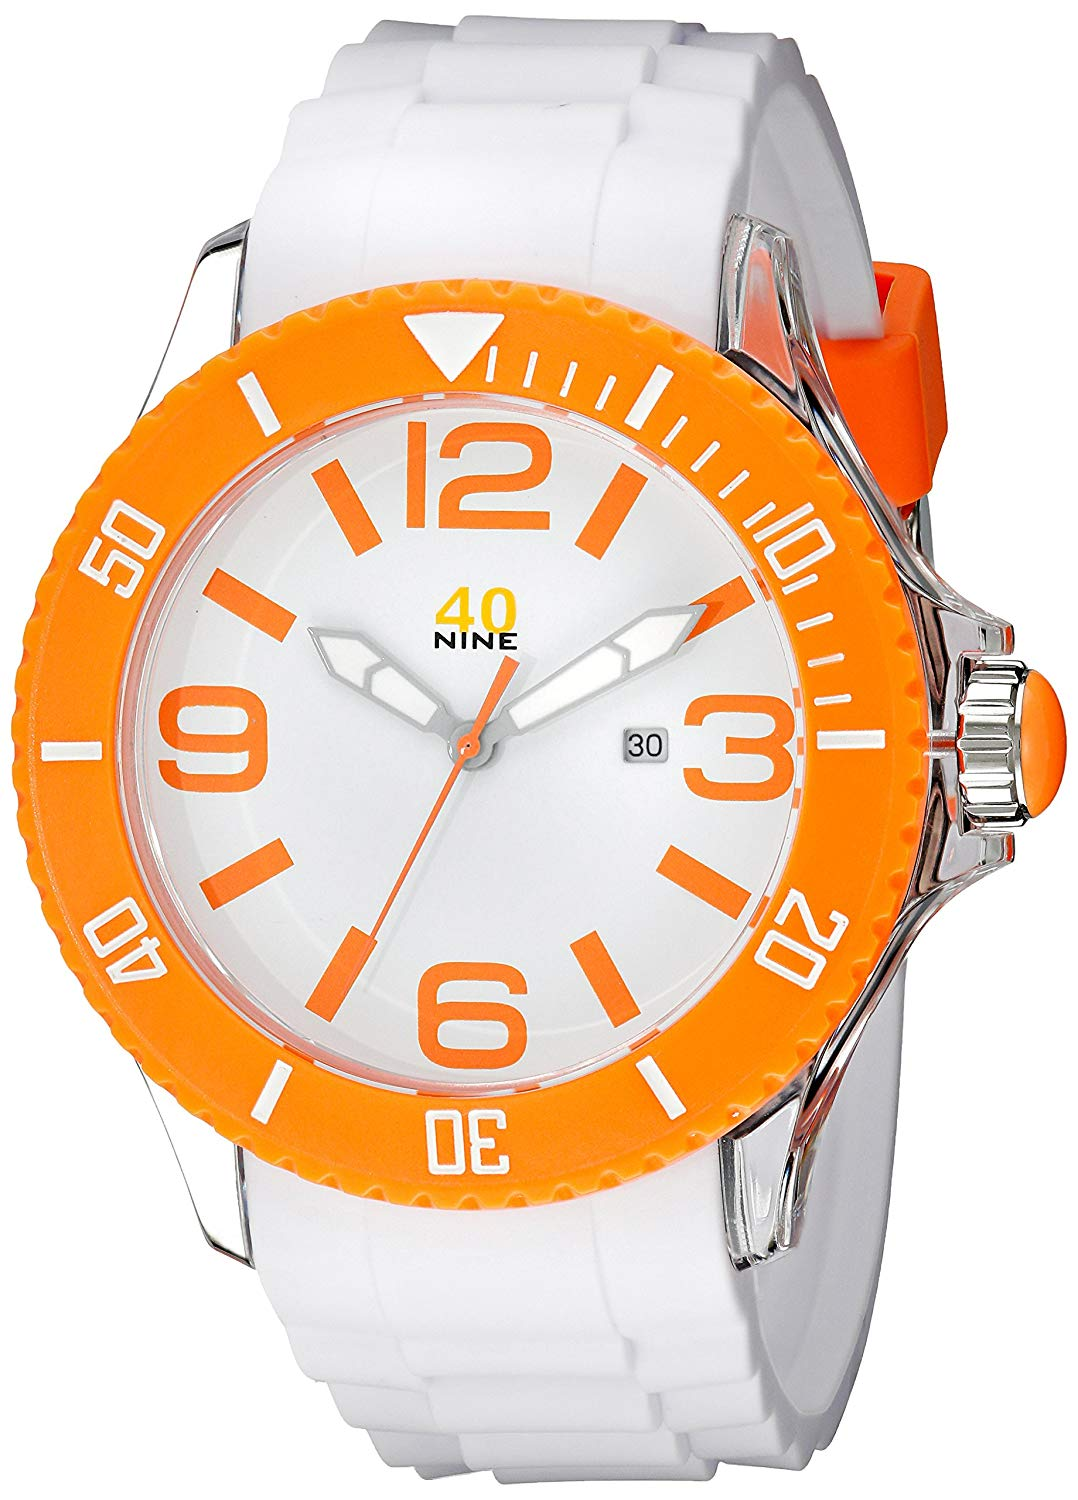 Watch On Line Deals Cheap Nine NineFind At ED9H2WI